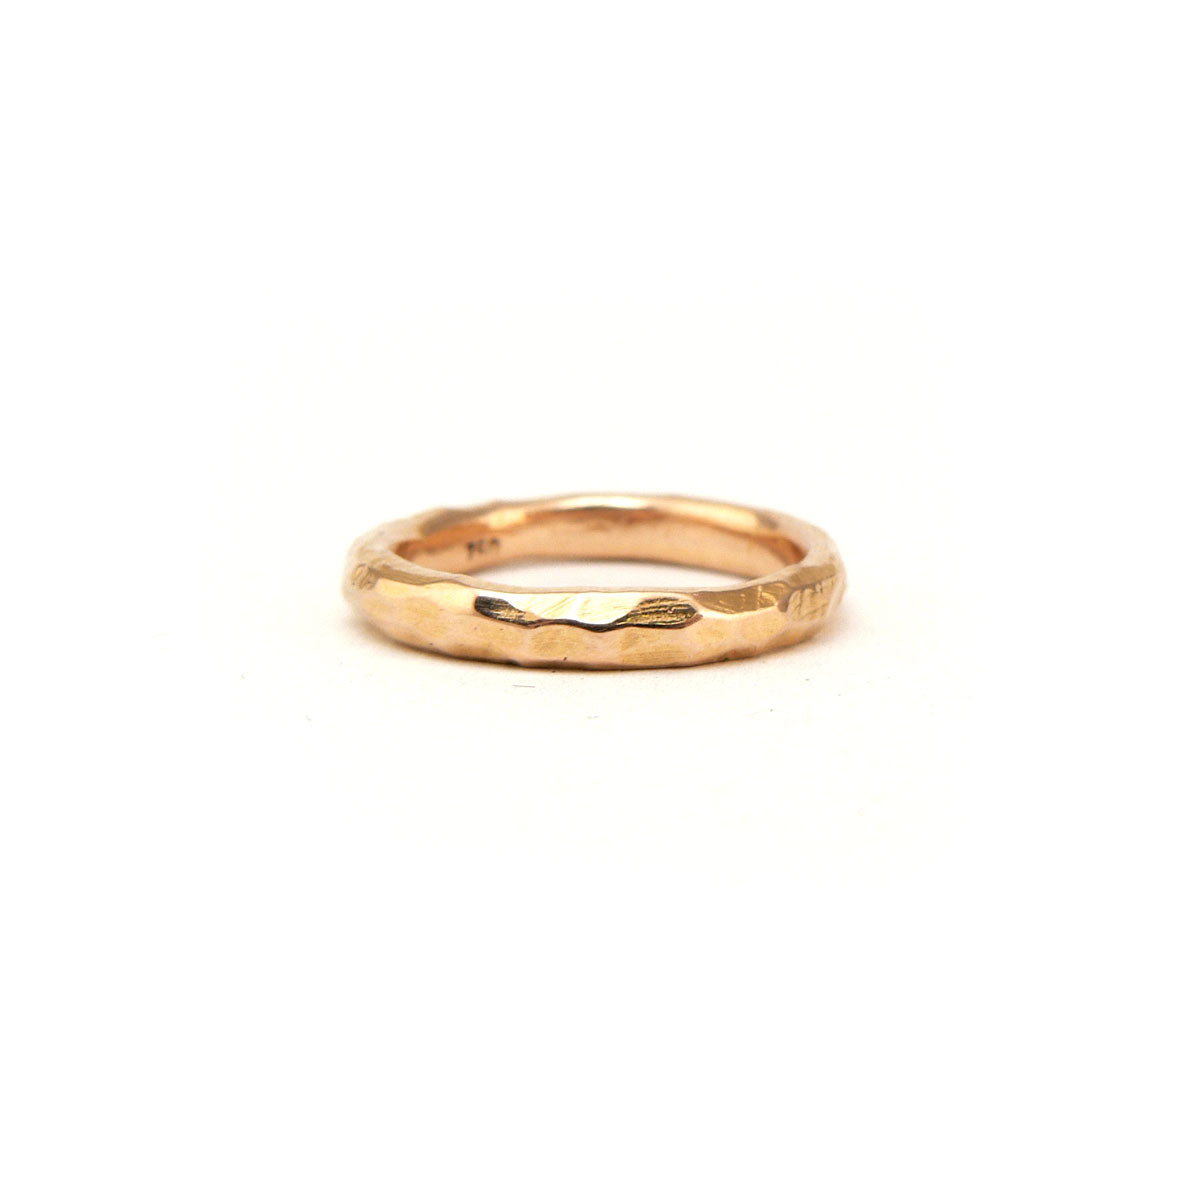 Organic feel rose gold wedding band